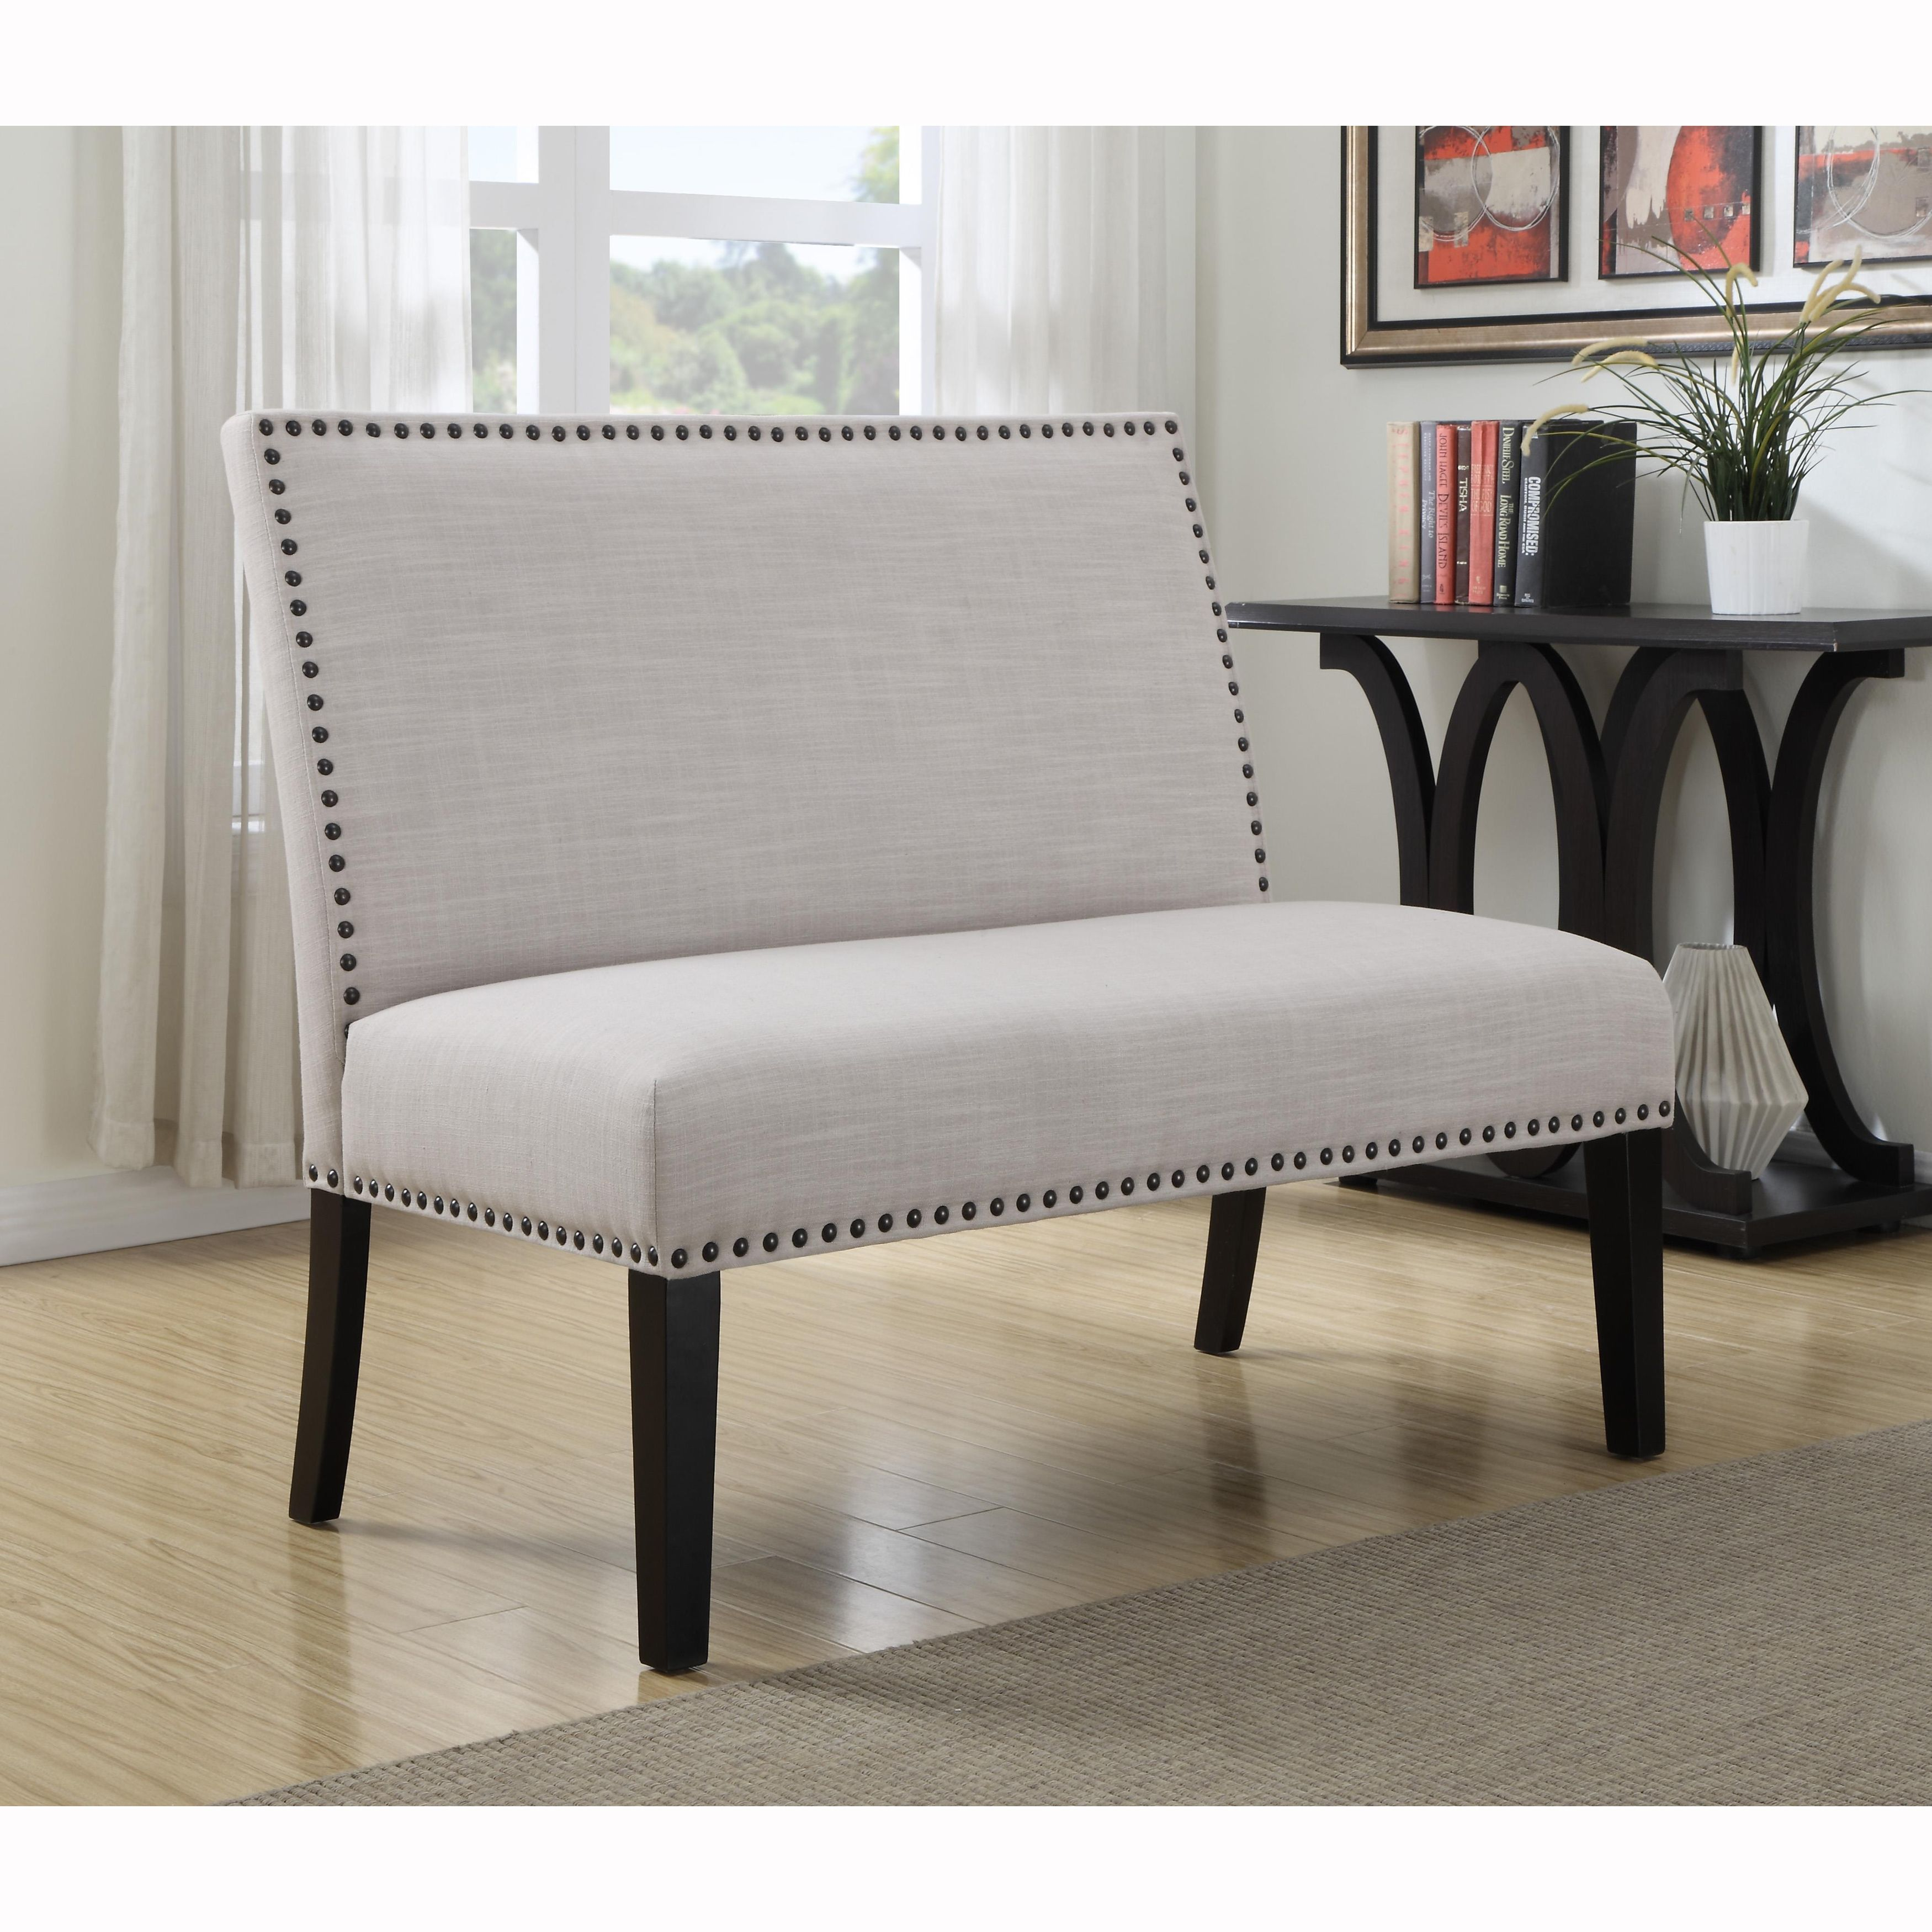 Cream upholstered banquette bench with nail head trim is for Banquette bench